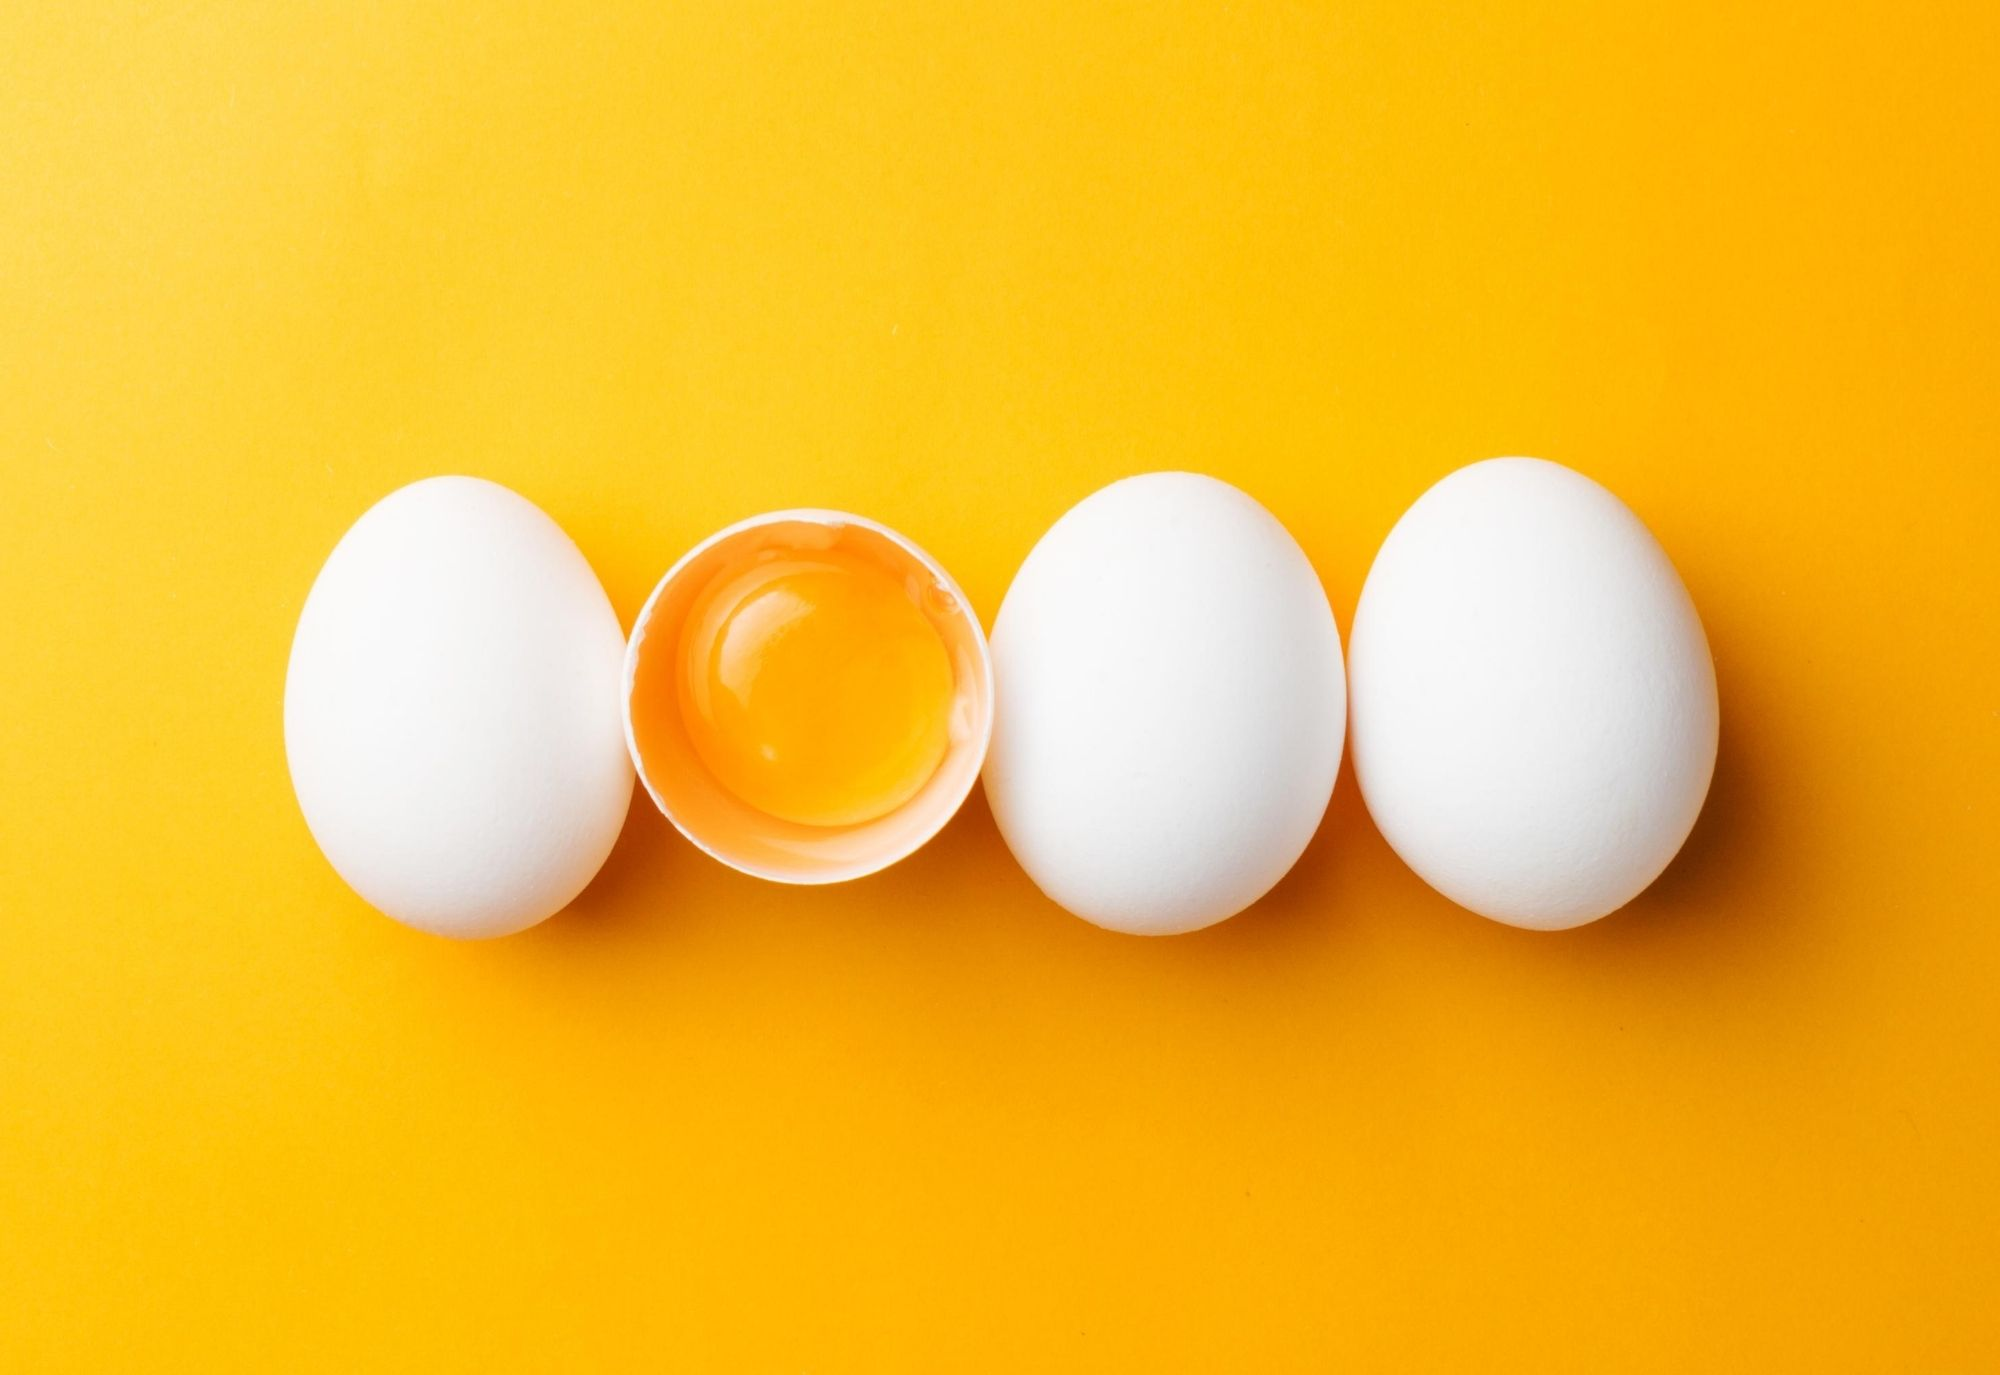 Do eggs cause weight gain?